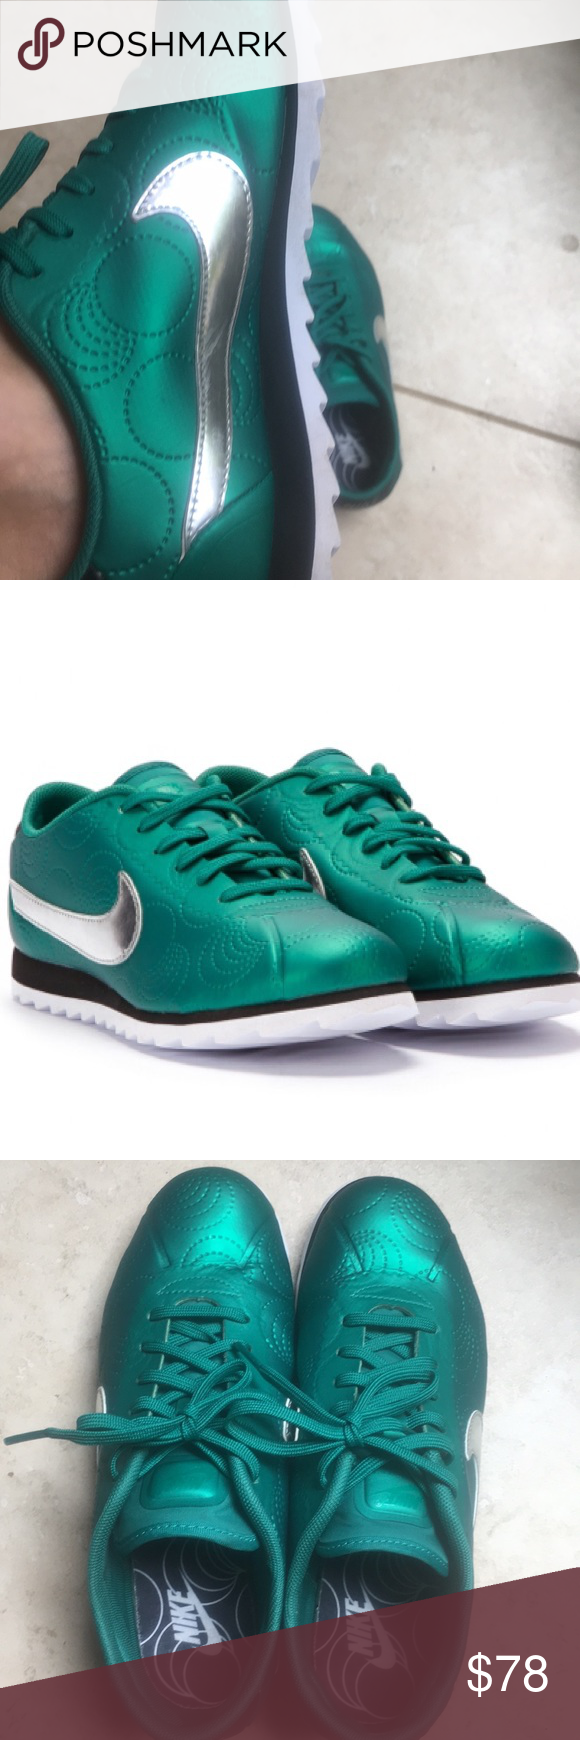 ef2b2154a9ee NIKE Women s CORTEZ ULTRA (MYSTIC GREEN   BLACK) One of the most iconic  sneakers